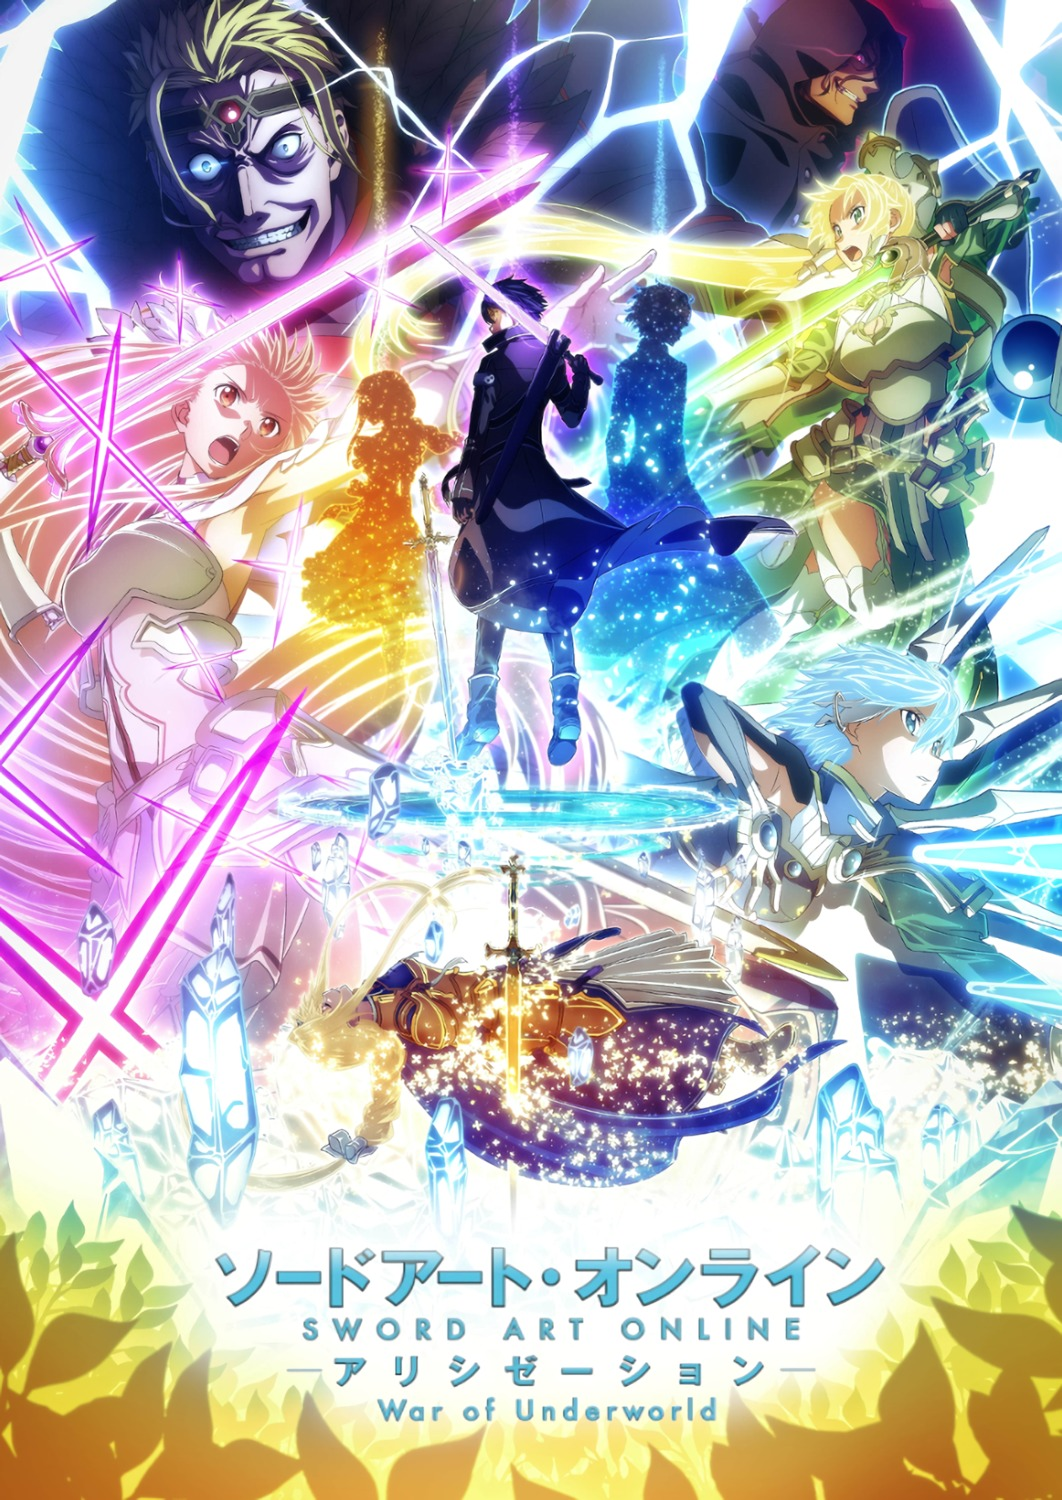 Press Release: Aniplex of America Announces Sword Art Online Alicization War of Underworld Complete Blu-ray Set!